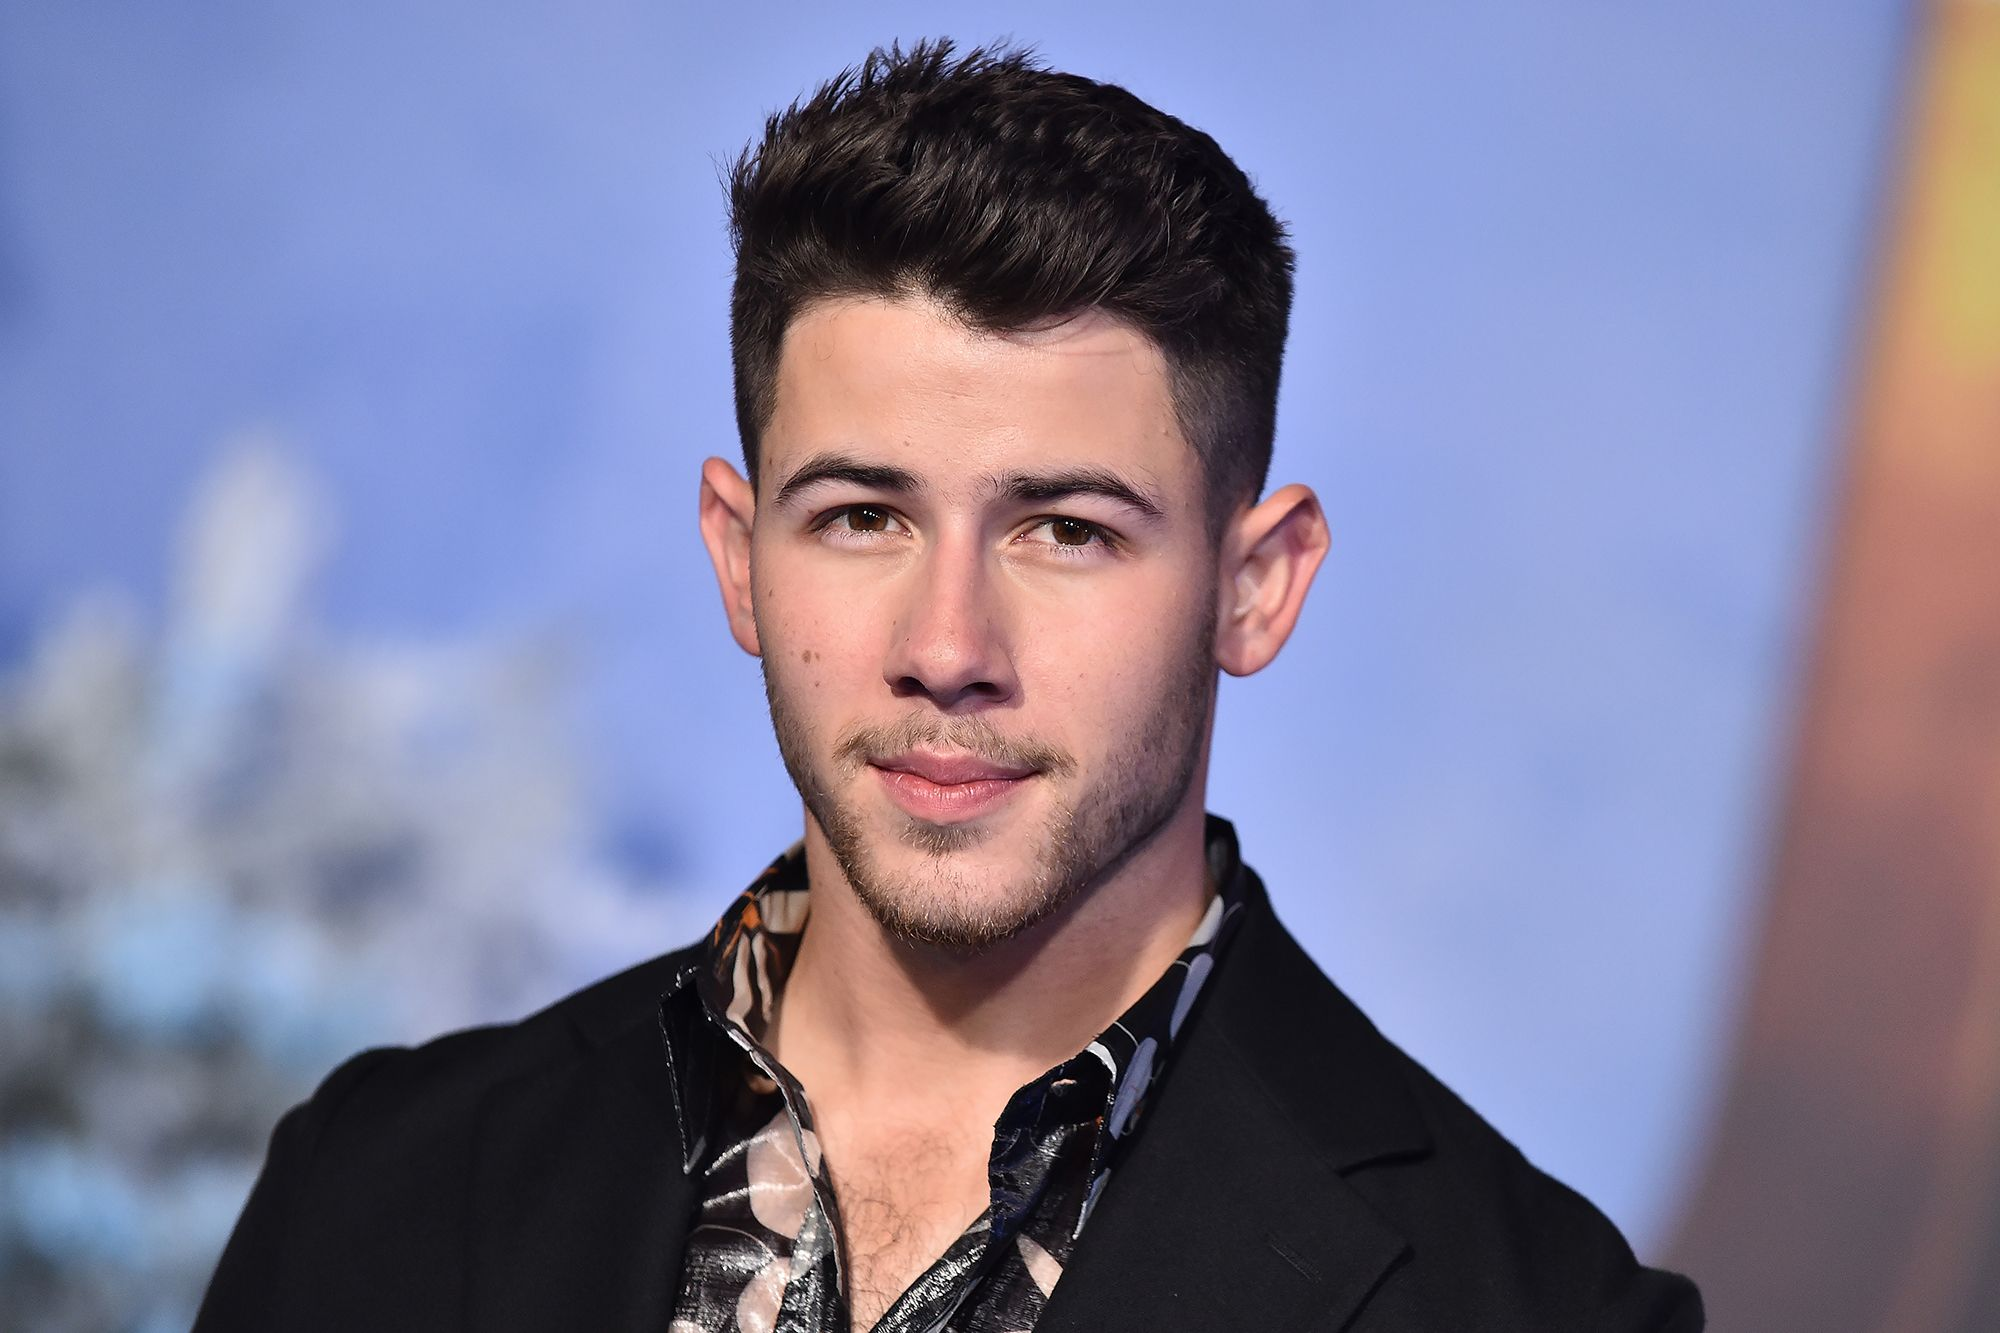 nick-jonas-cracked-a-rib-while-on-set-with-his-brothers-heres-what-happened